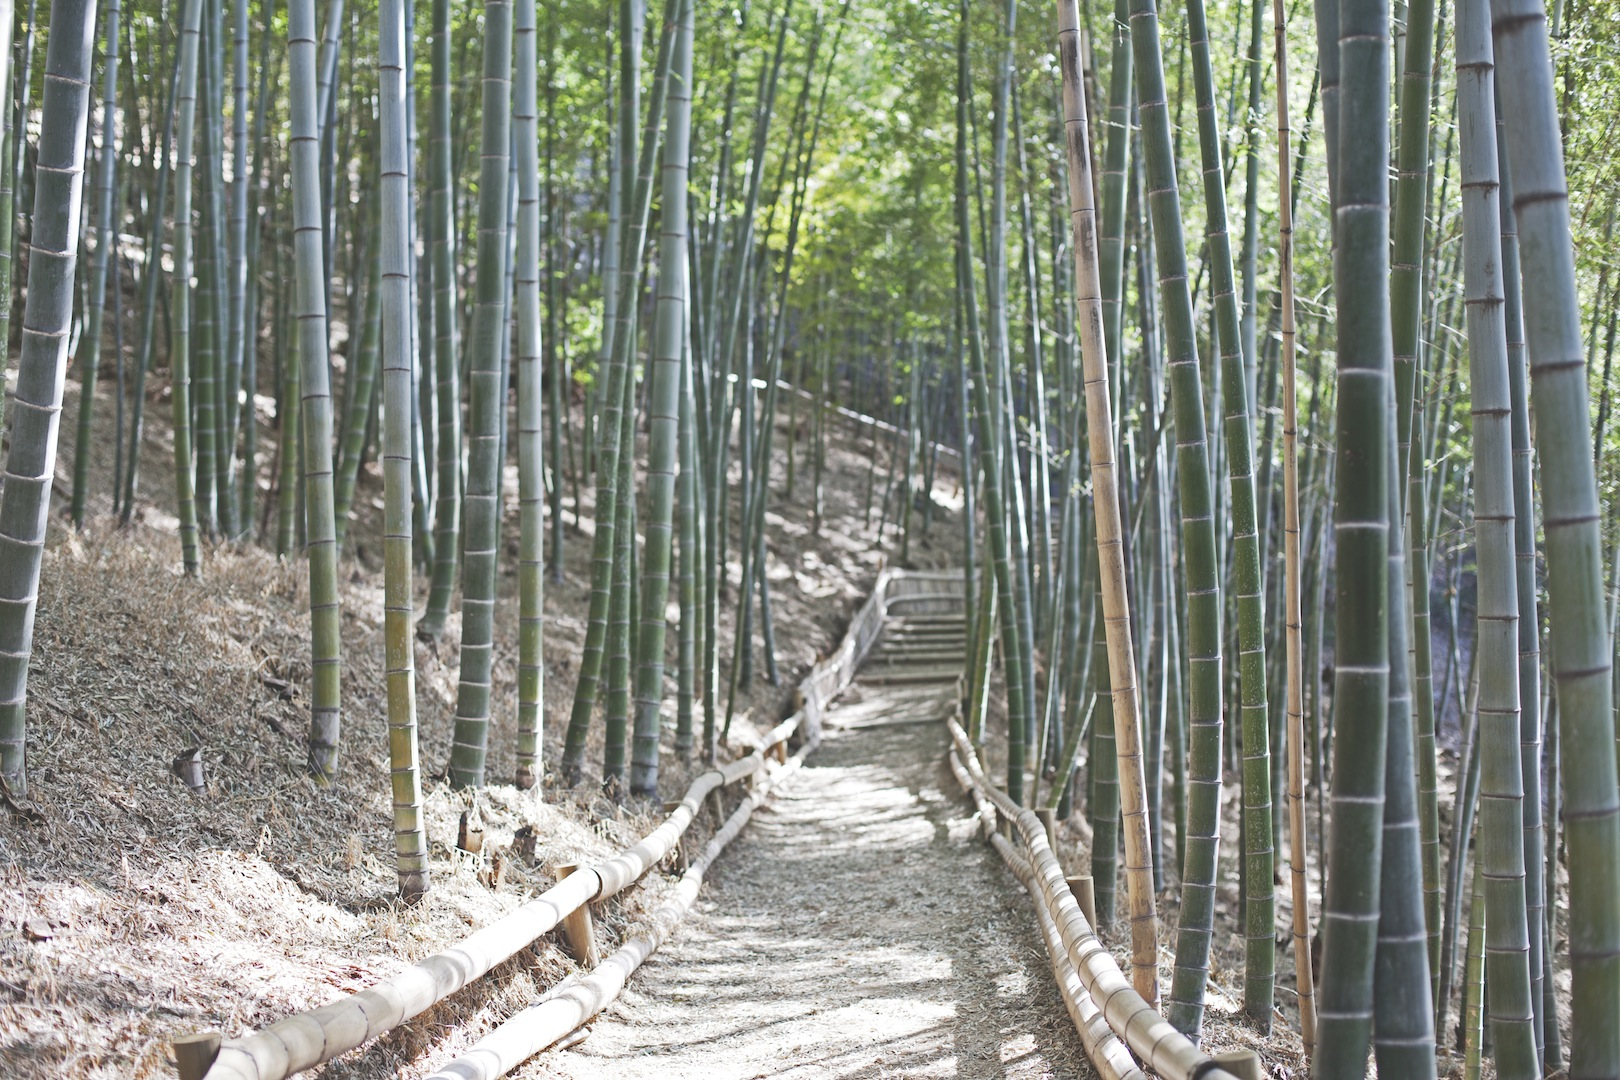 A trip to the bamboo forest